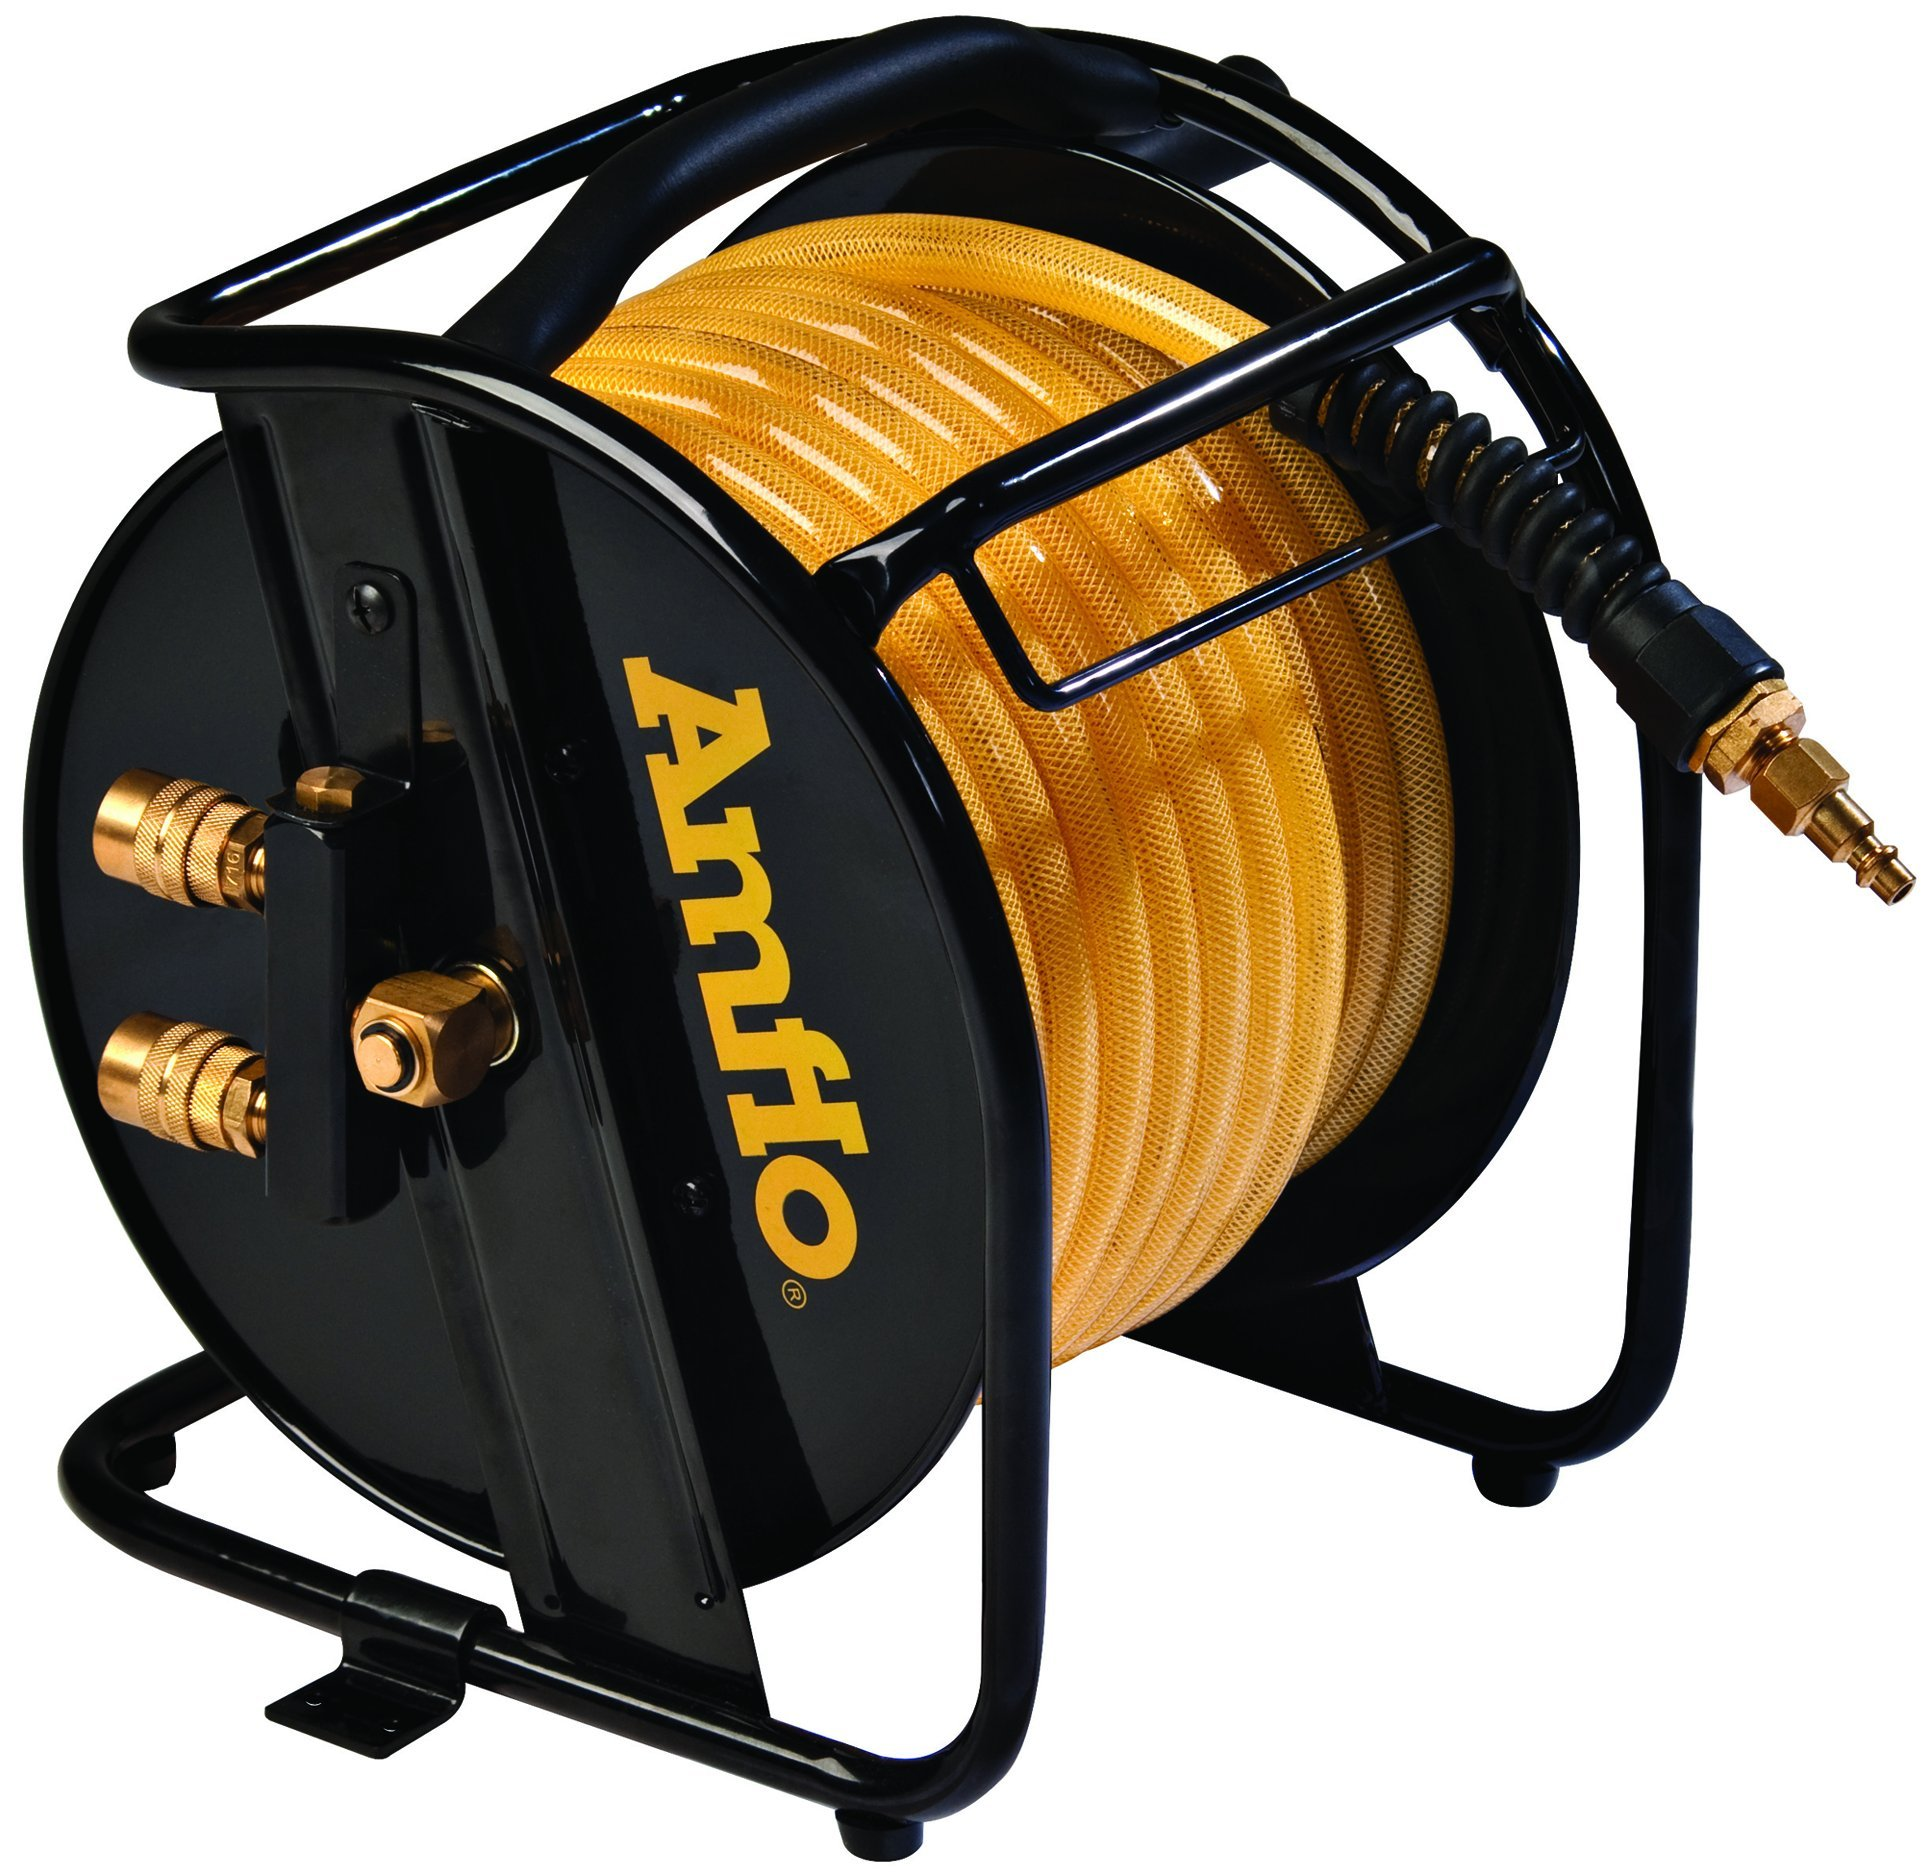 Amflo 545HR-RET Manual Hose Reel With 200 PSI 3/8'' x 75'  Polyurethane Gold Air Hose With Dual Output Fittings by Amflo (Image #2)